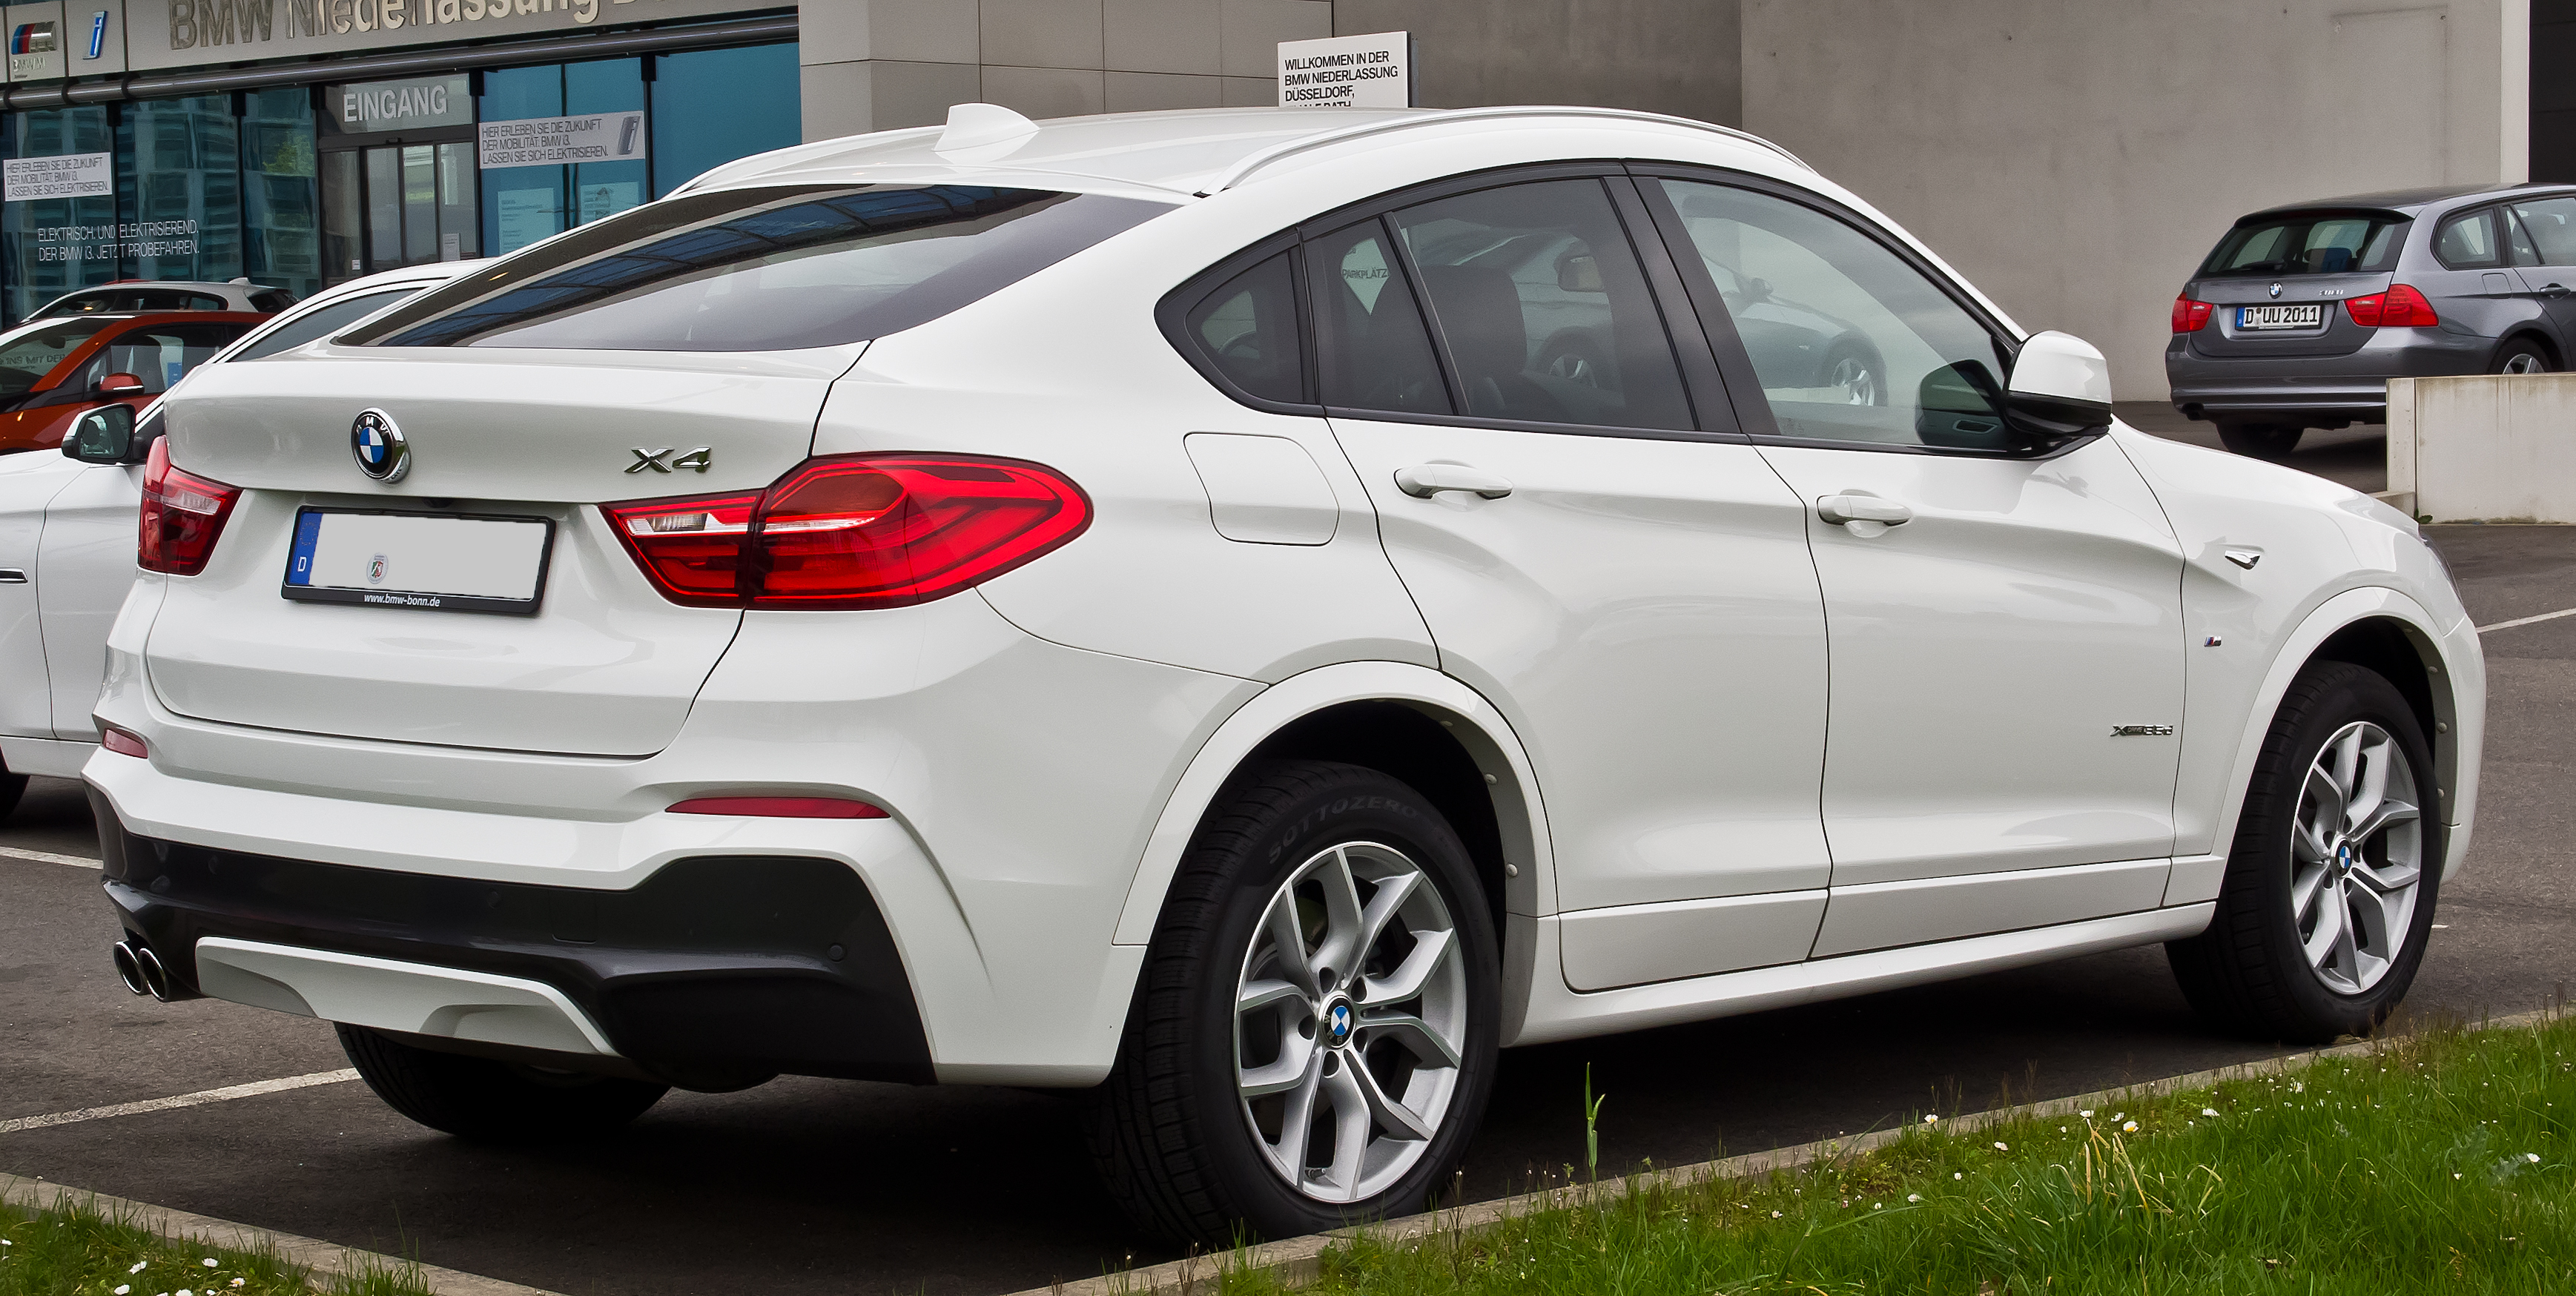 file bmw x4 xdrive35d m sportpaket f26 heckansicht 11 april 2015 d. Black Bedroom Furniture Sets. Home Design Ideas